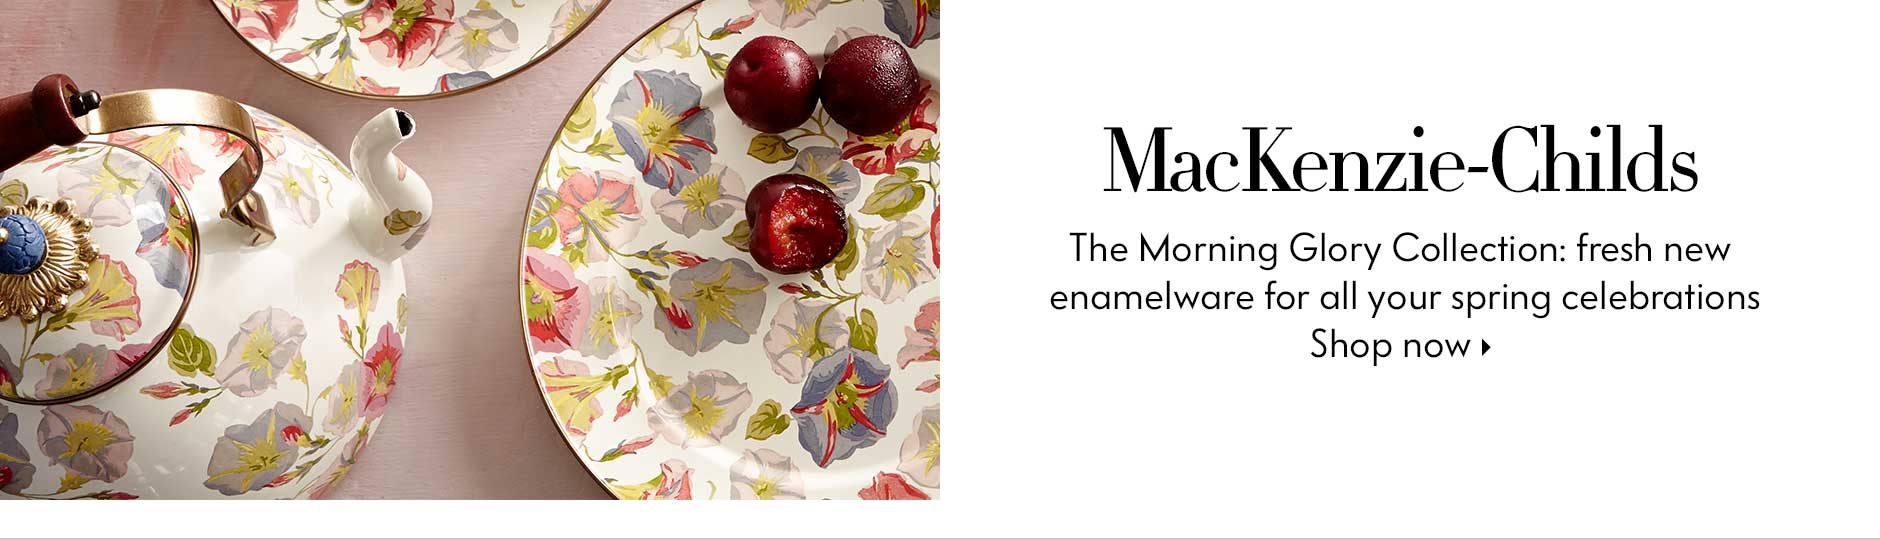 MacKenzie-childs, the morning glory collection: fresh new enamelware for all your spring celebrations - shop now